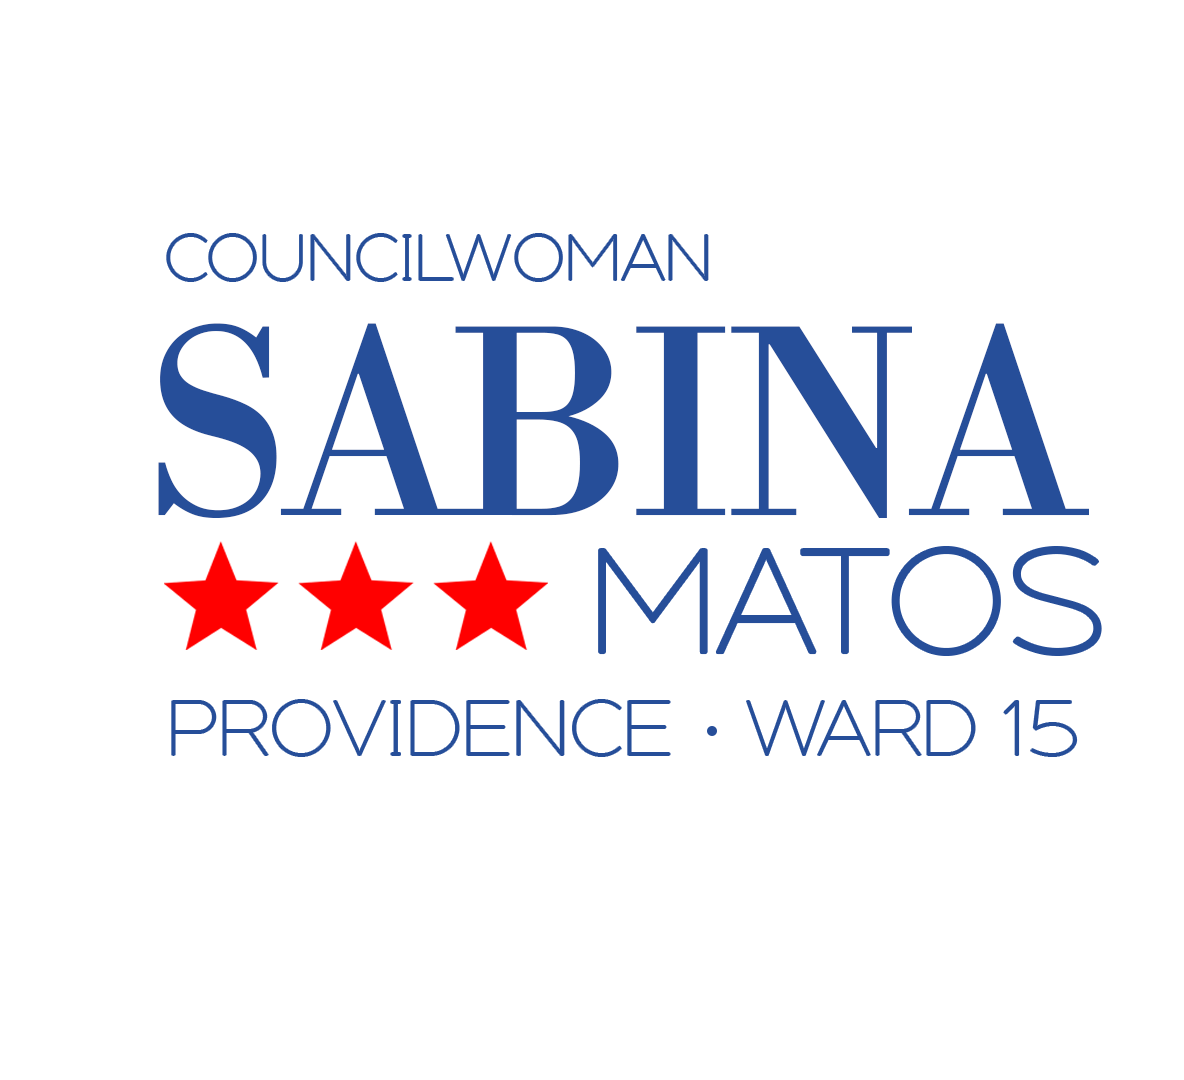 Sabina Matos - Ward 15